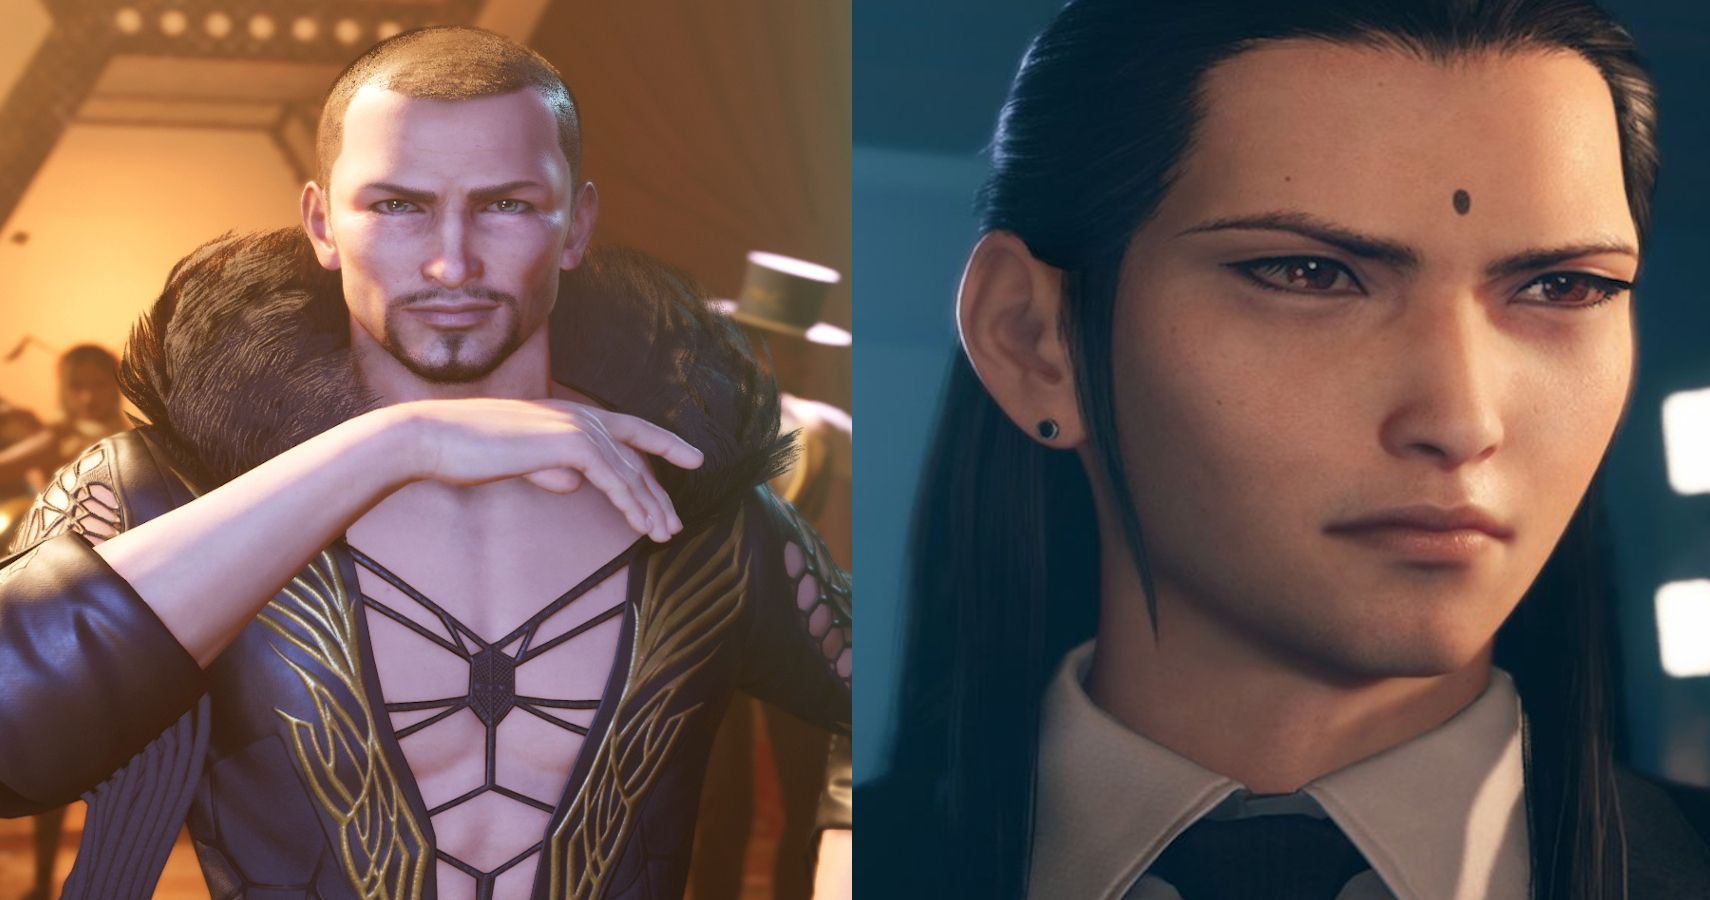 Final Fantasy 7 Remake The 5 Best Designed Characters 5 That Could Have Used More Work